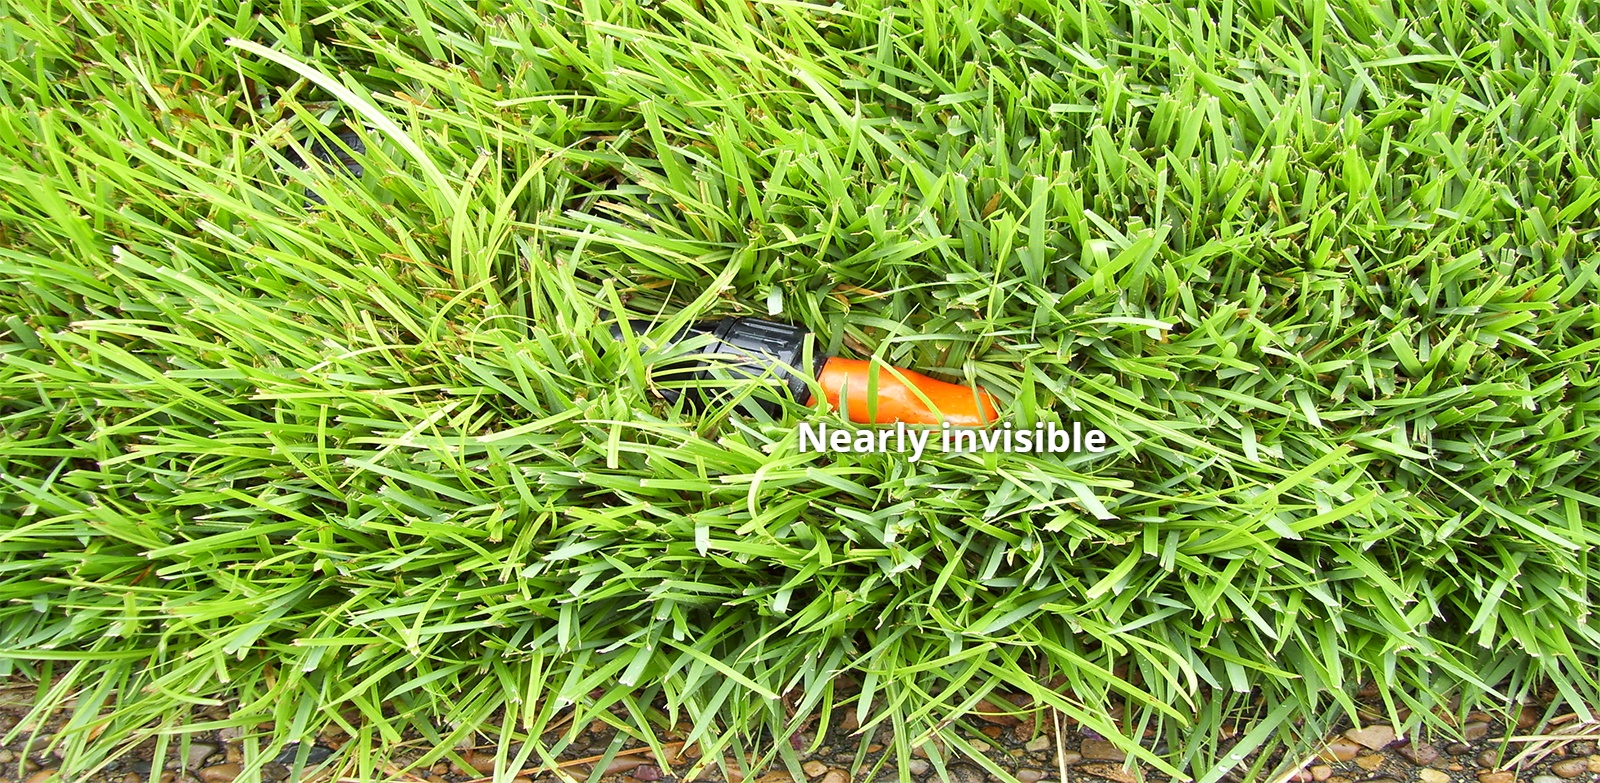 Lawn sprinkler in grass